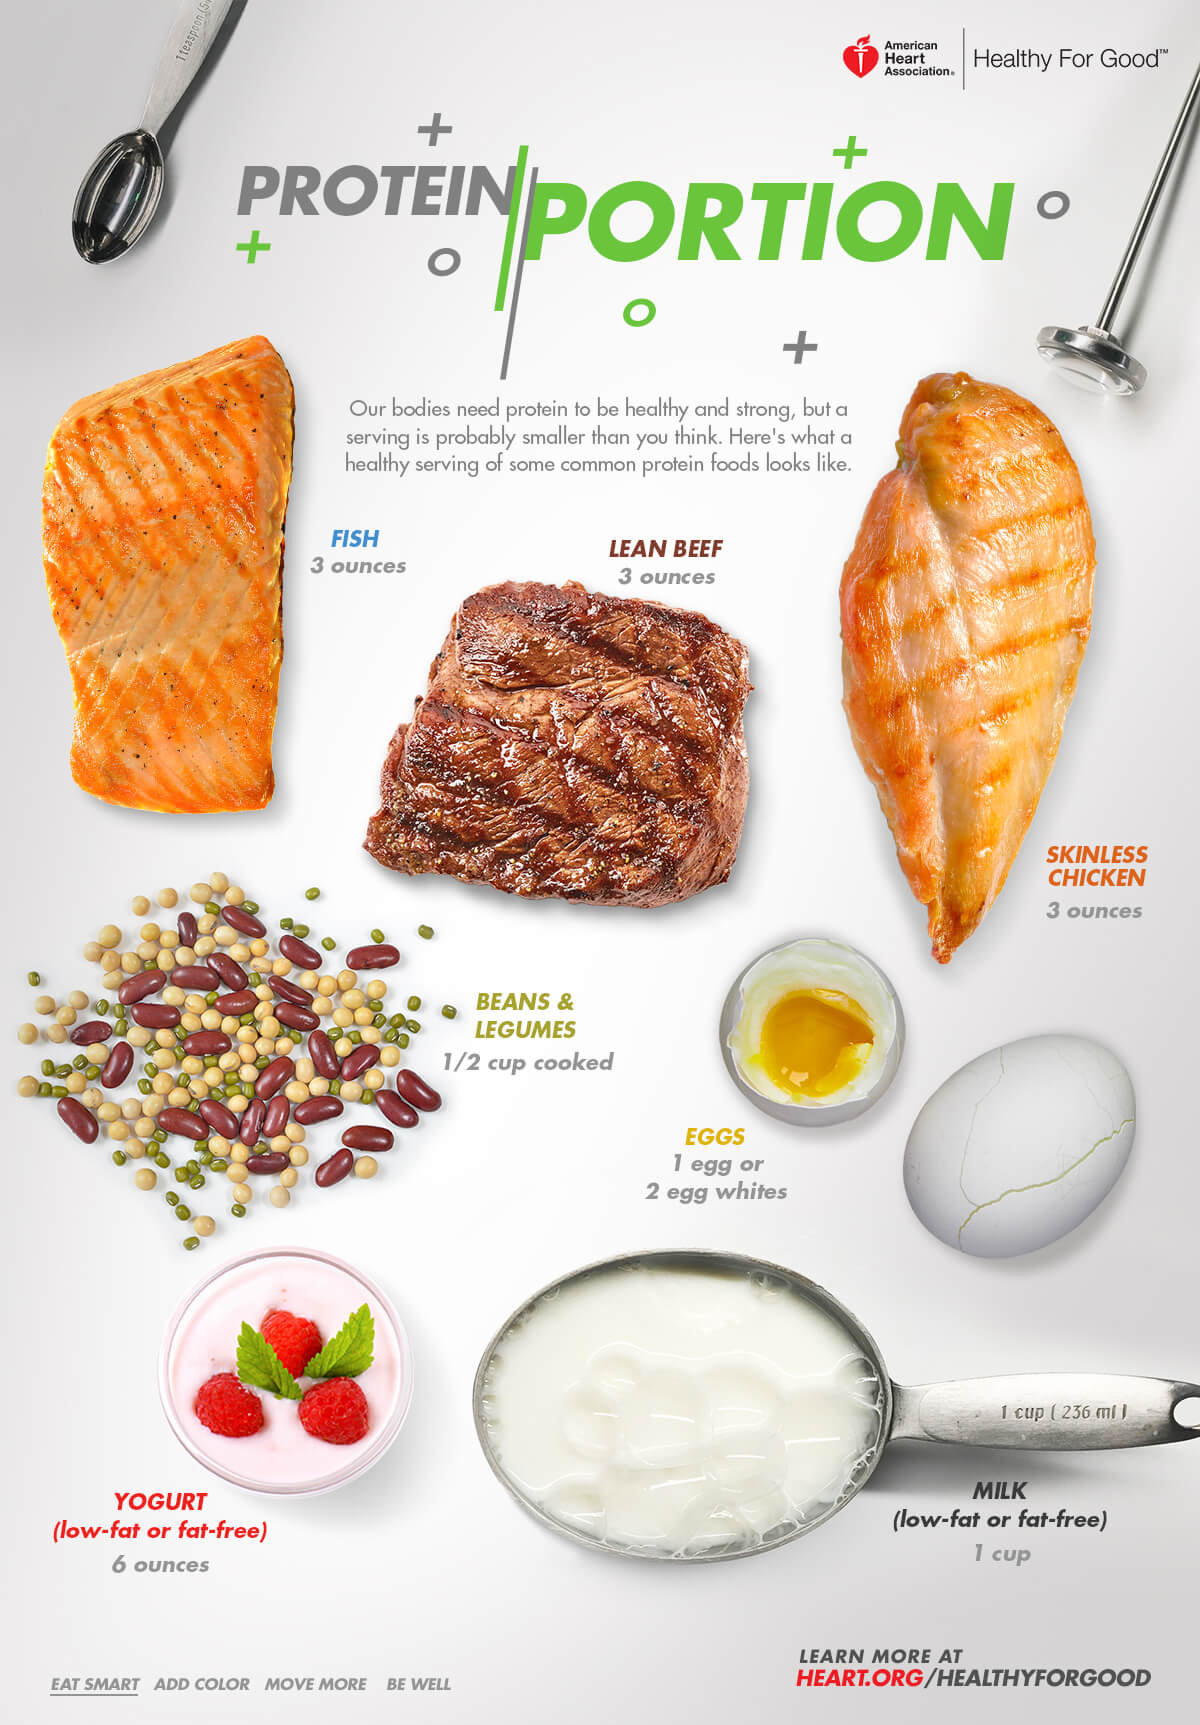 How much protein should I eat in a serving?